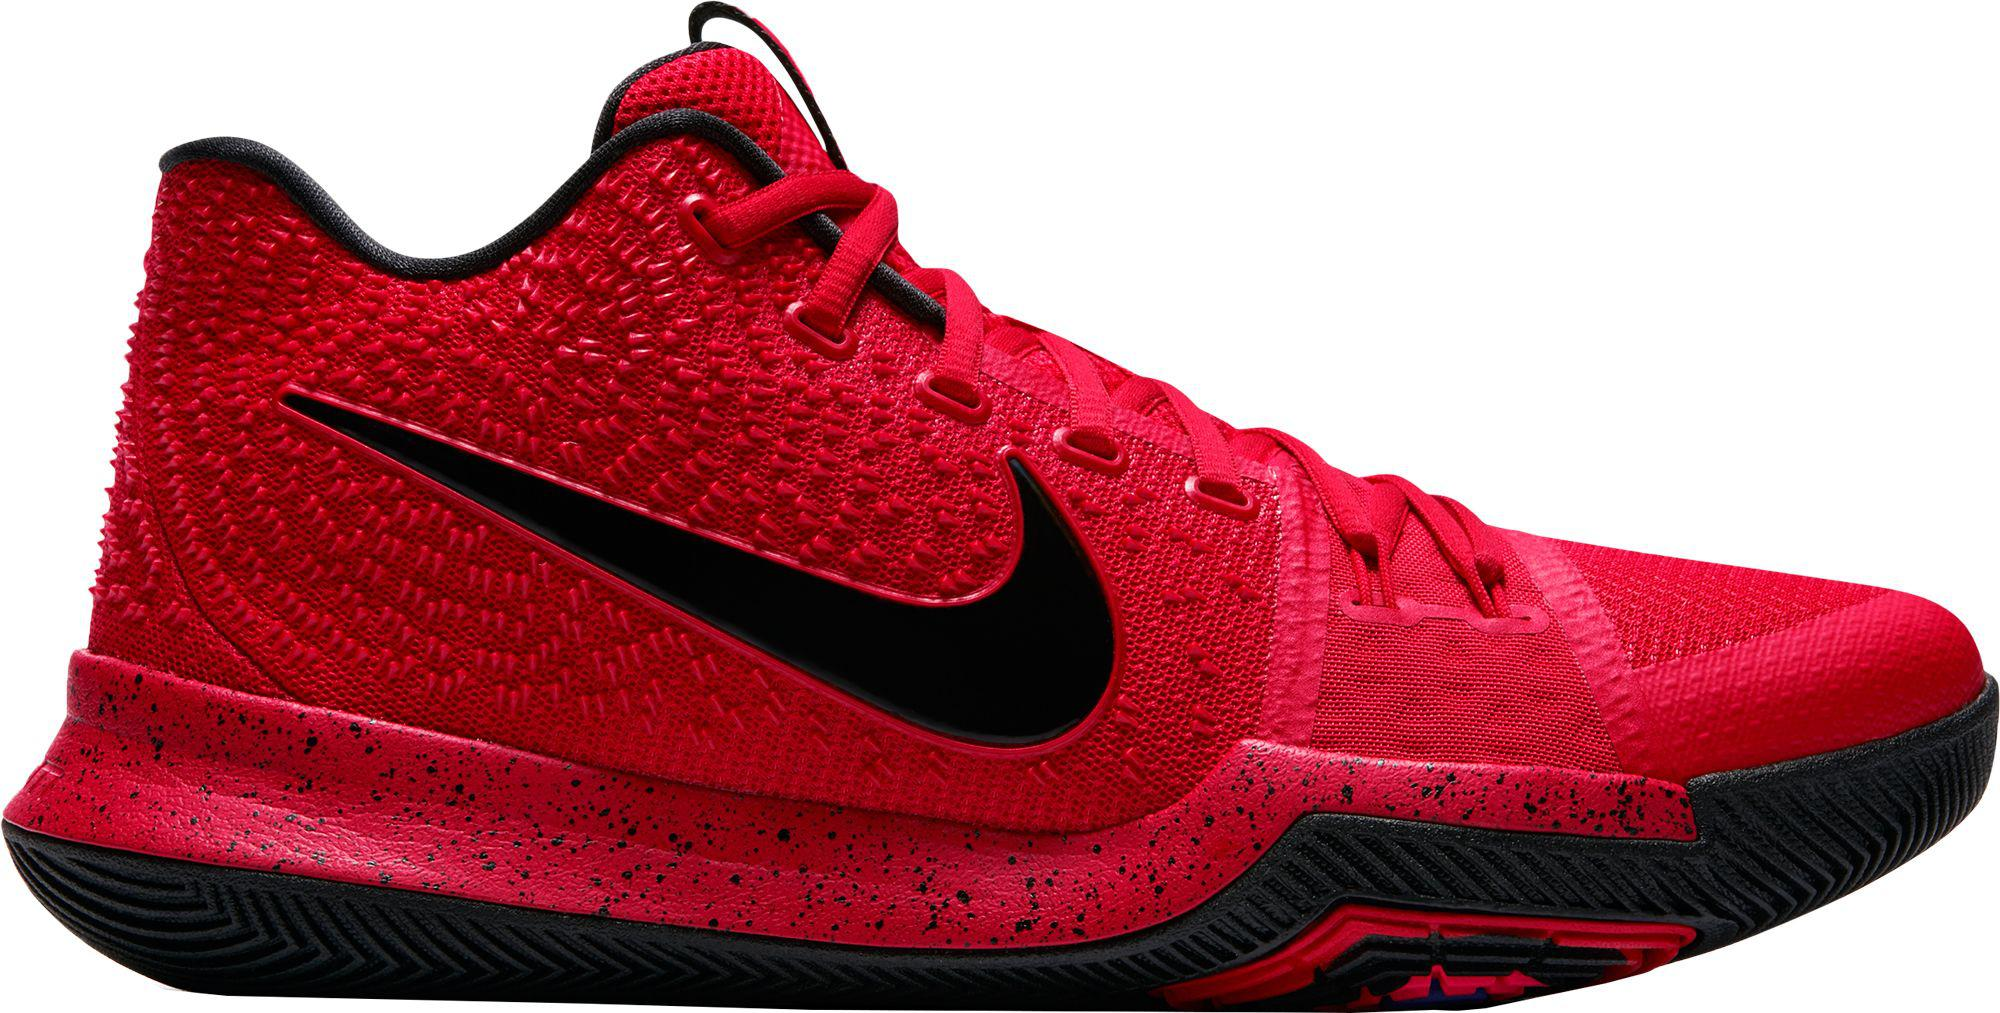 2b1fbf145a8e Lyst - Nike Kyrie 3 Basketball Shoes in Red for Men